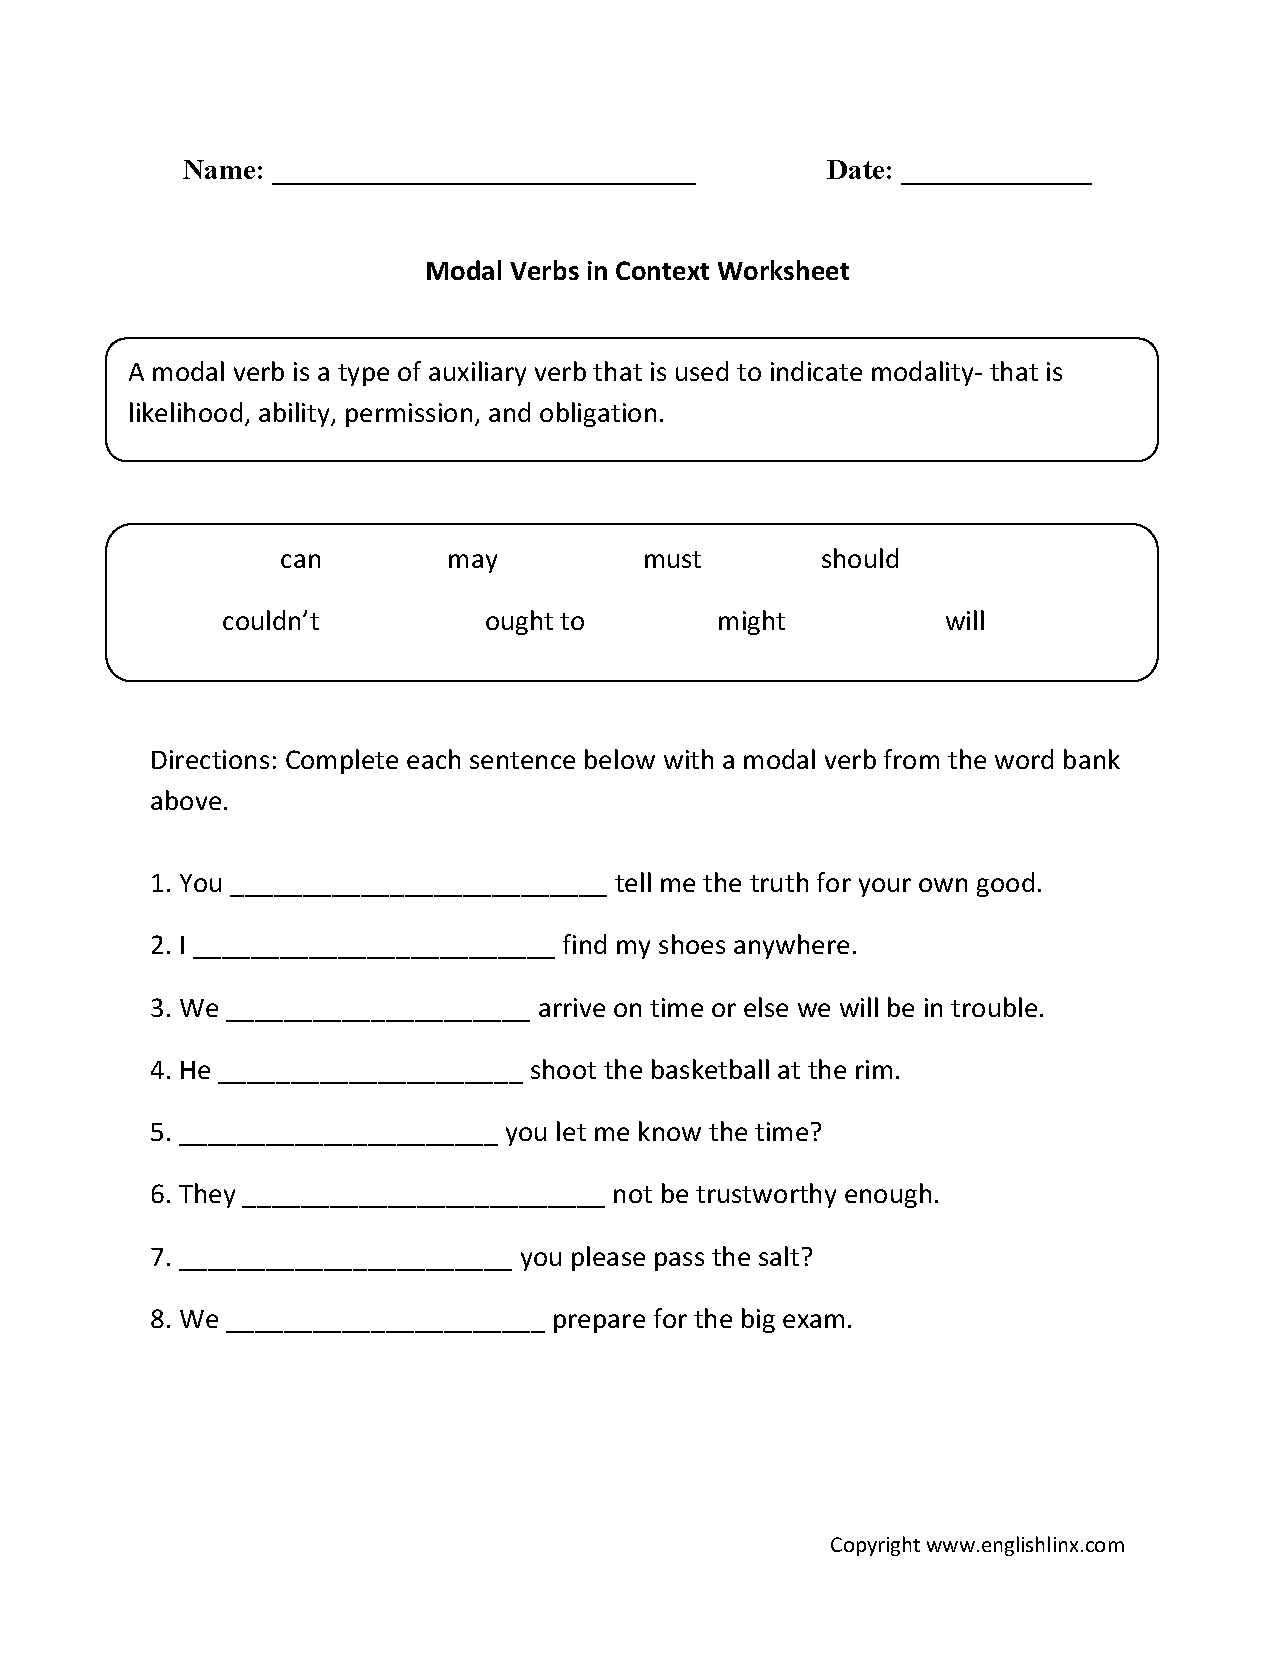 Aldiablosus  Marvelous Worksheet For Verbs  Coffemix With Gorgeous Englishlinxcom  Verbs Worksheets With Beautiful Free Reading Worksheets For Kindergarten Also Division Worksheets Free In Addition Contractions Worksheet Free And Print Out Worksheets As Well As Naming Ionic Compounds With Polyatomic Ions Worksheet Additionally Worksheets On Verbs From Coffemixcom With Aldiablosus  Gorgeous Worksheet For Verbs  Coffemix With Beautiful Englishlinxcom  Verbs Worksheets And Marvelous Free Reading Worksheets For Kindergarten Also Division Worksheets Free In Addition Contractions Worksheet Free From Coffemixcom